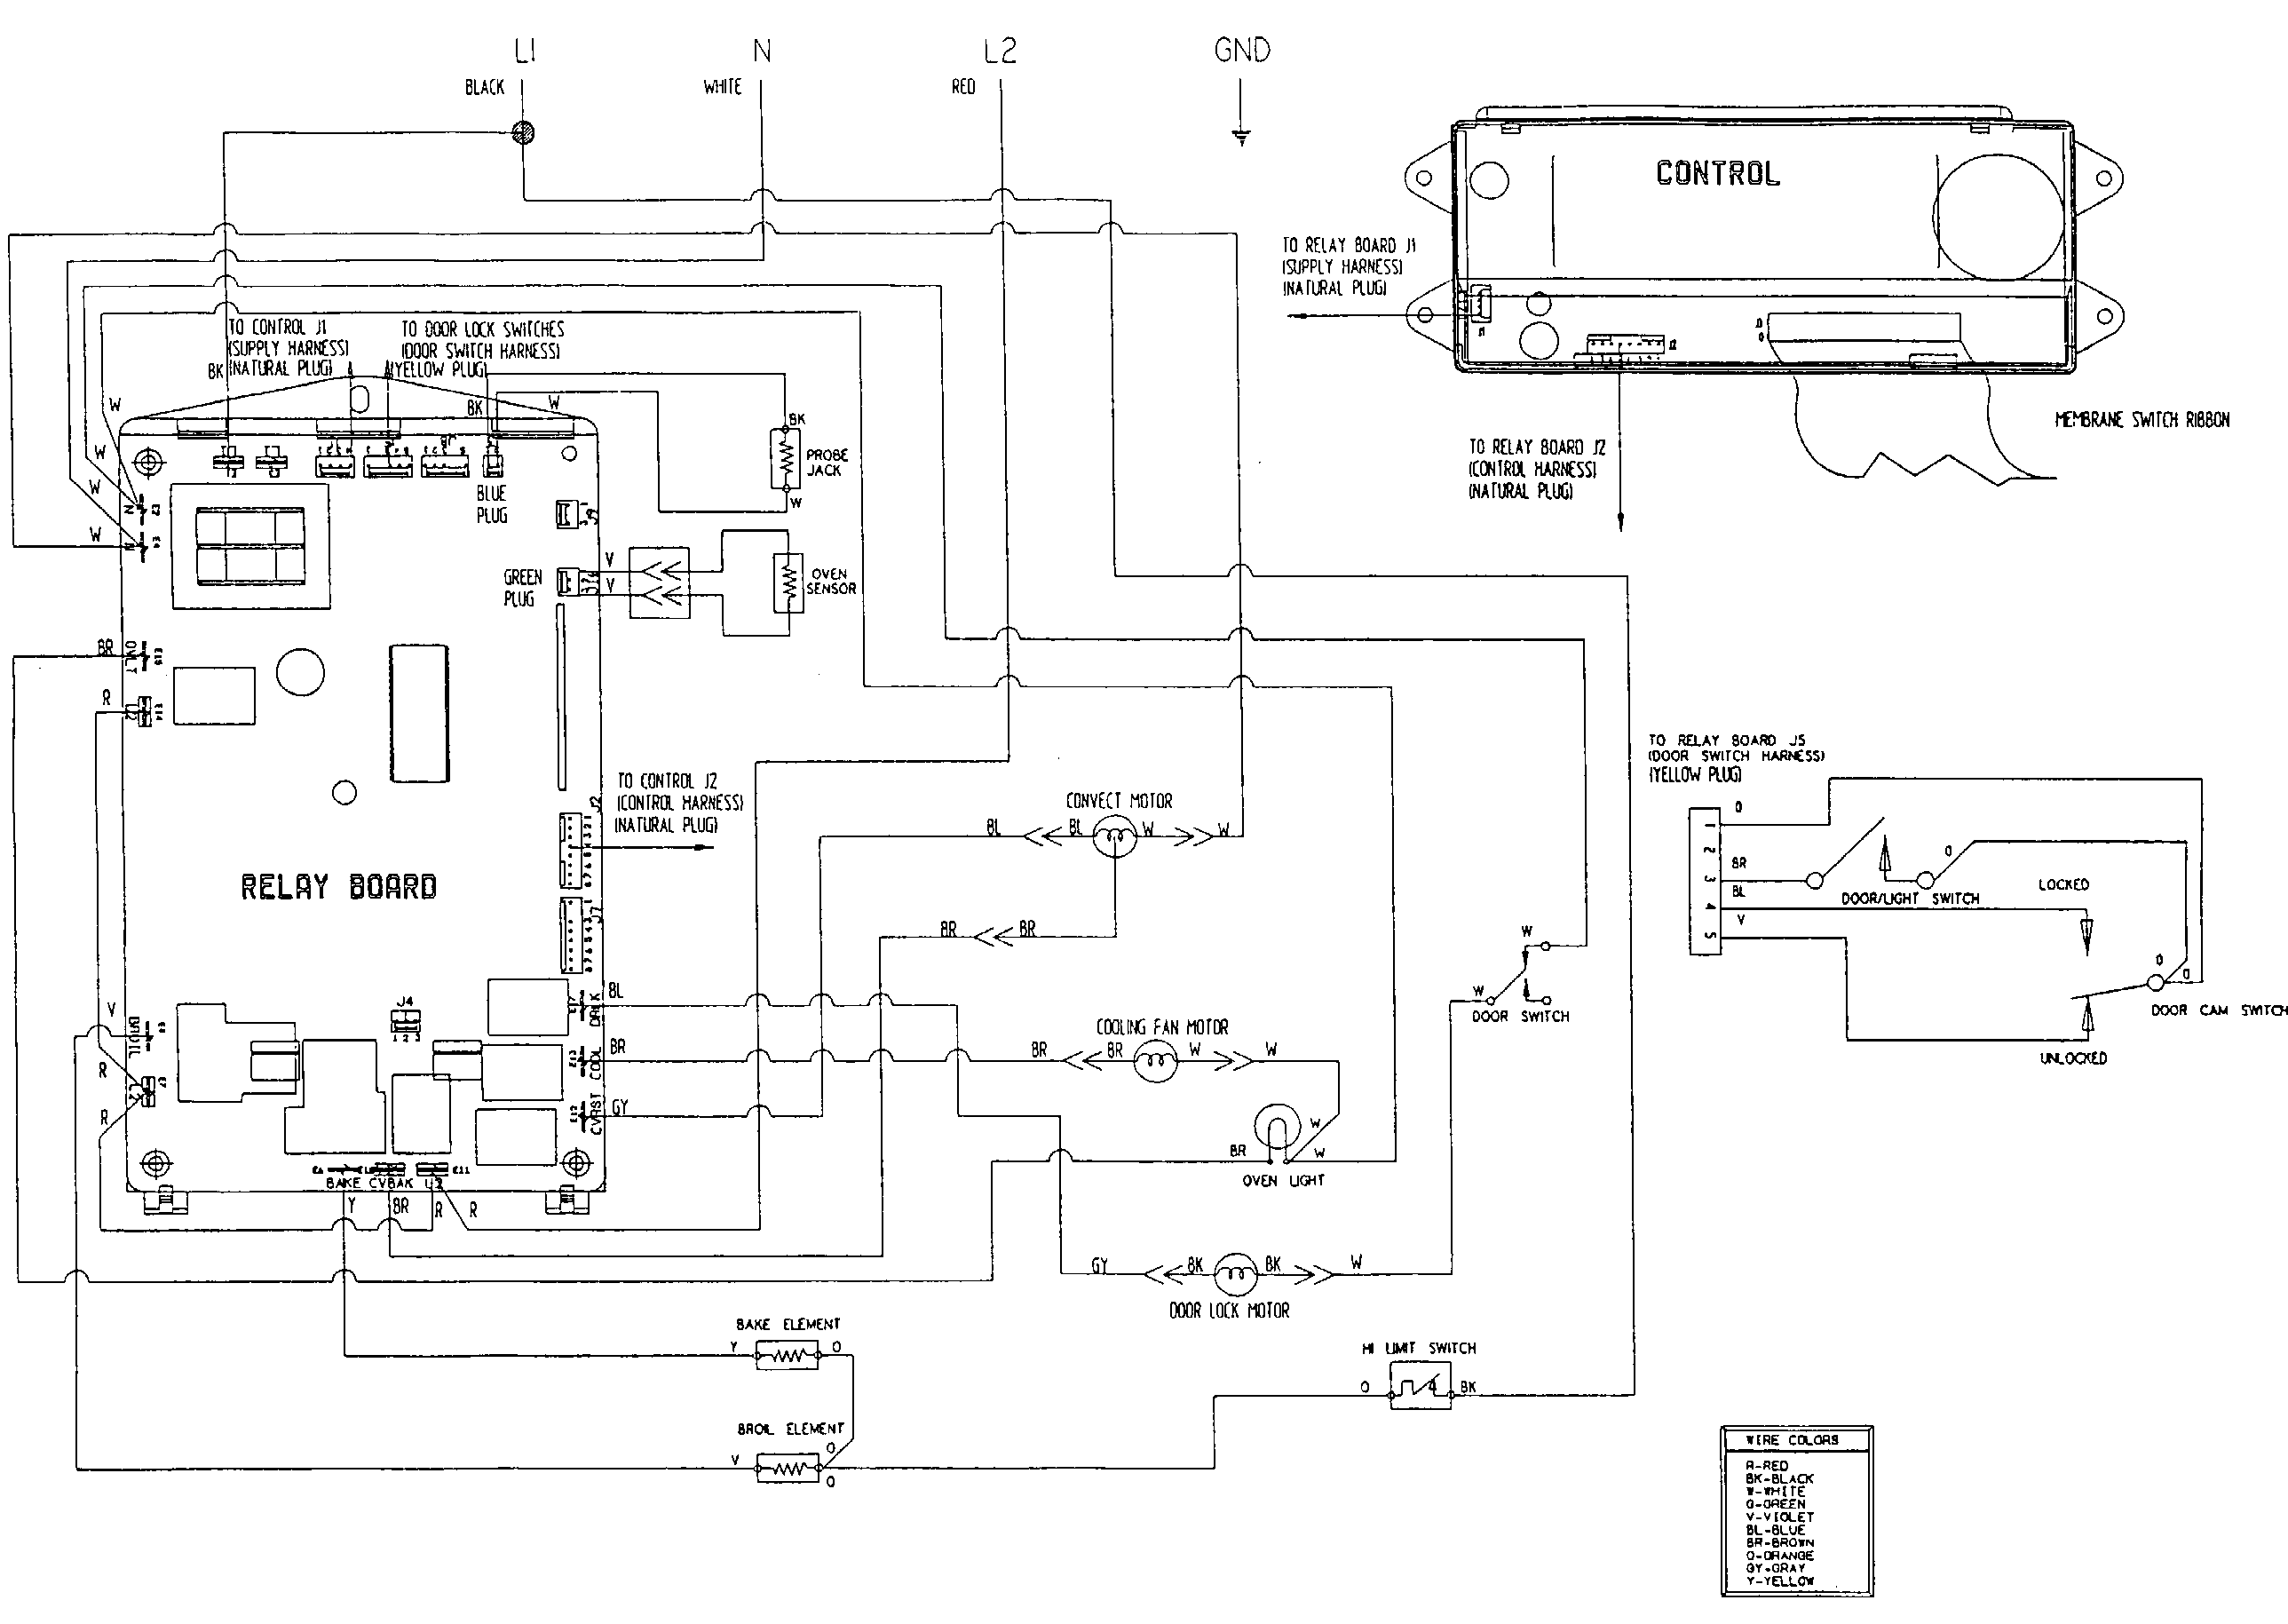 Wiring Diagram For Electric Wall Oven Books Of Frigidaire Cooktop Jenn Air W30400bc Timer Stove Clocks